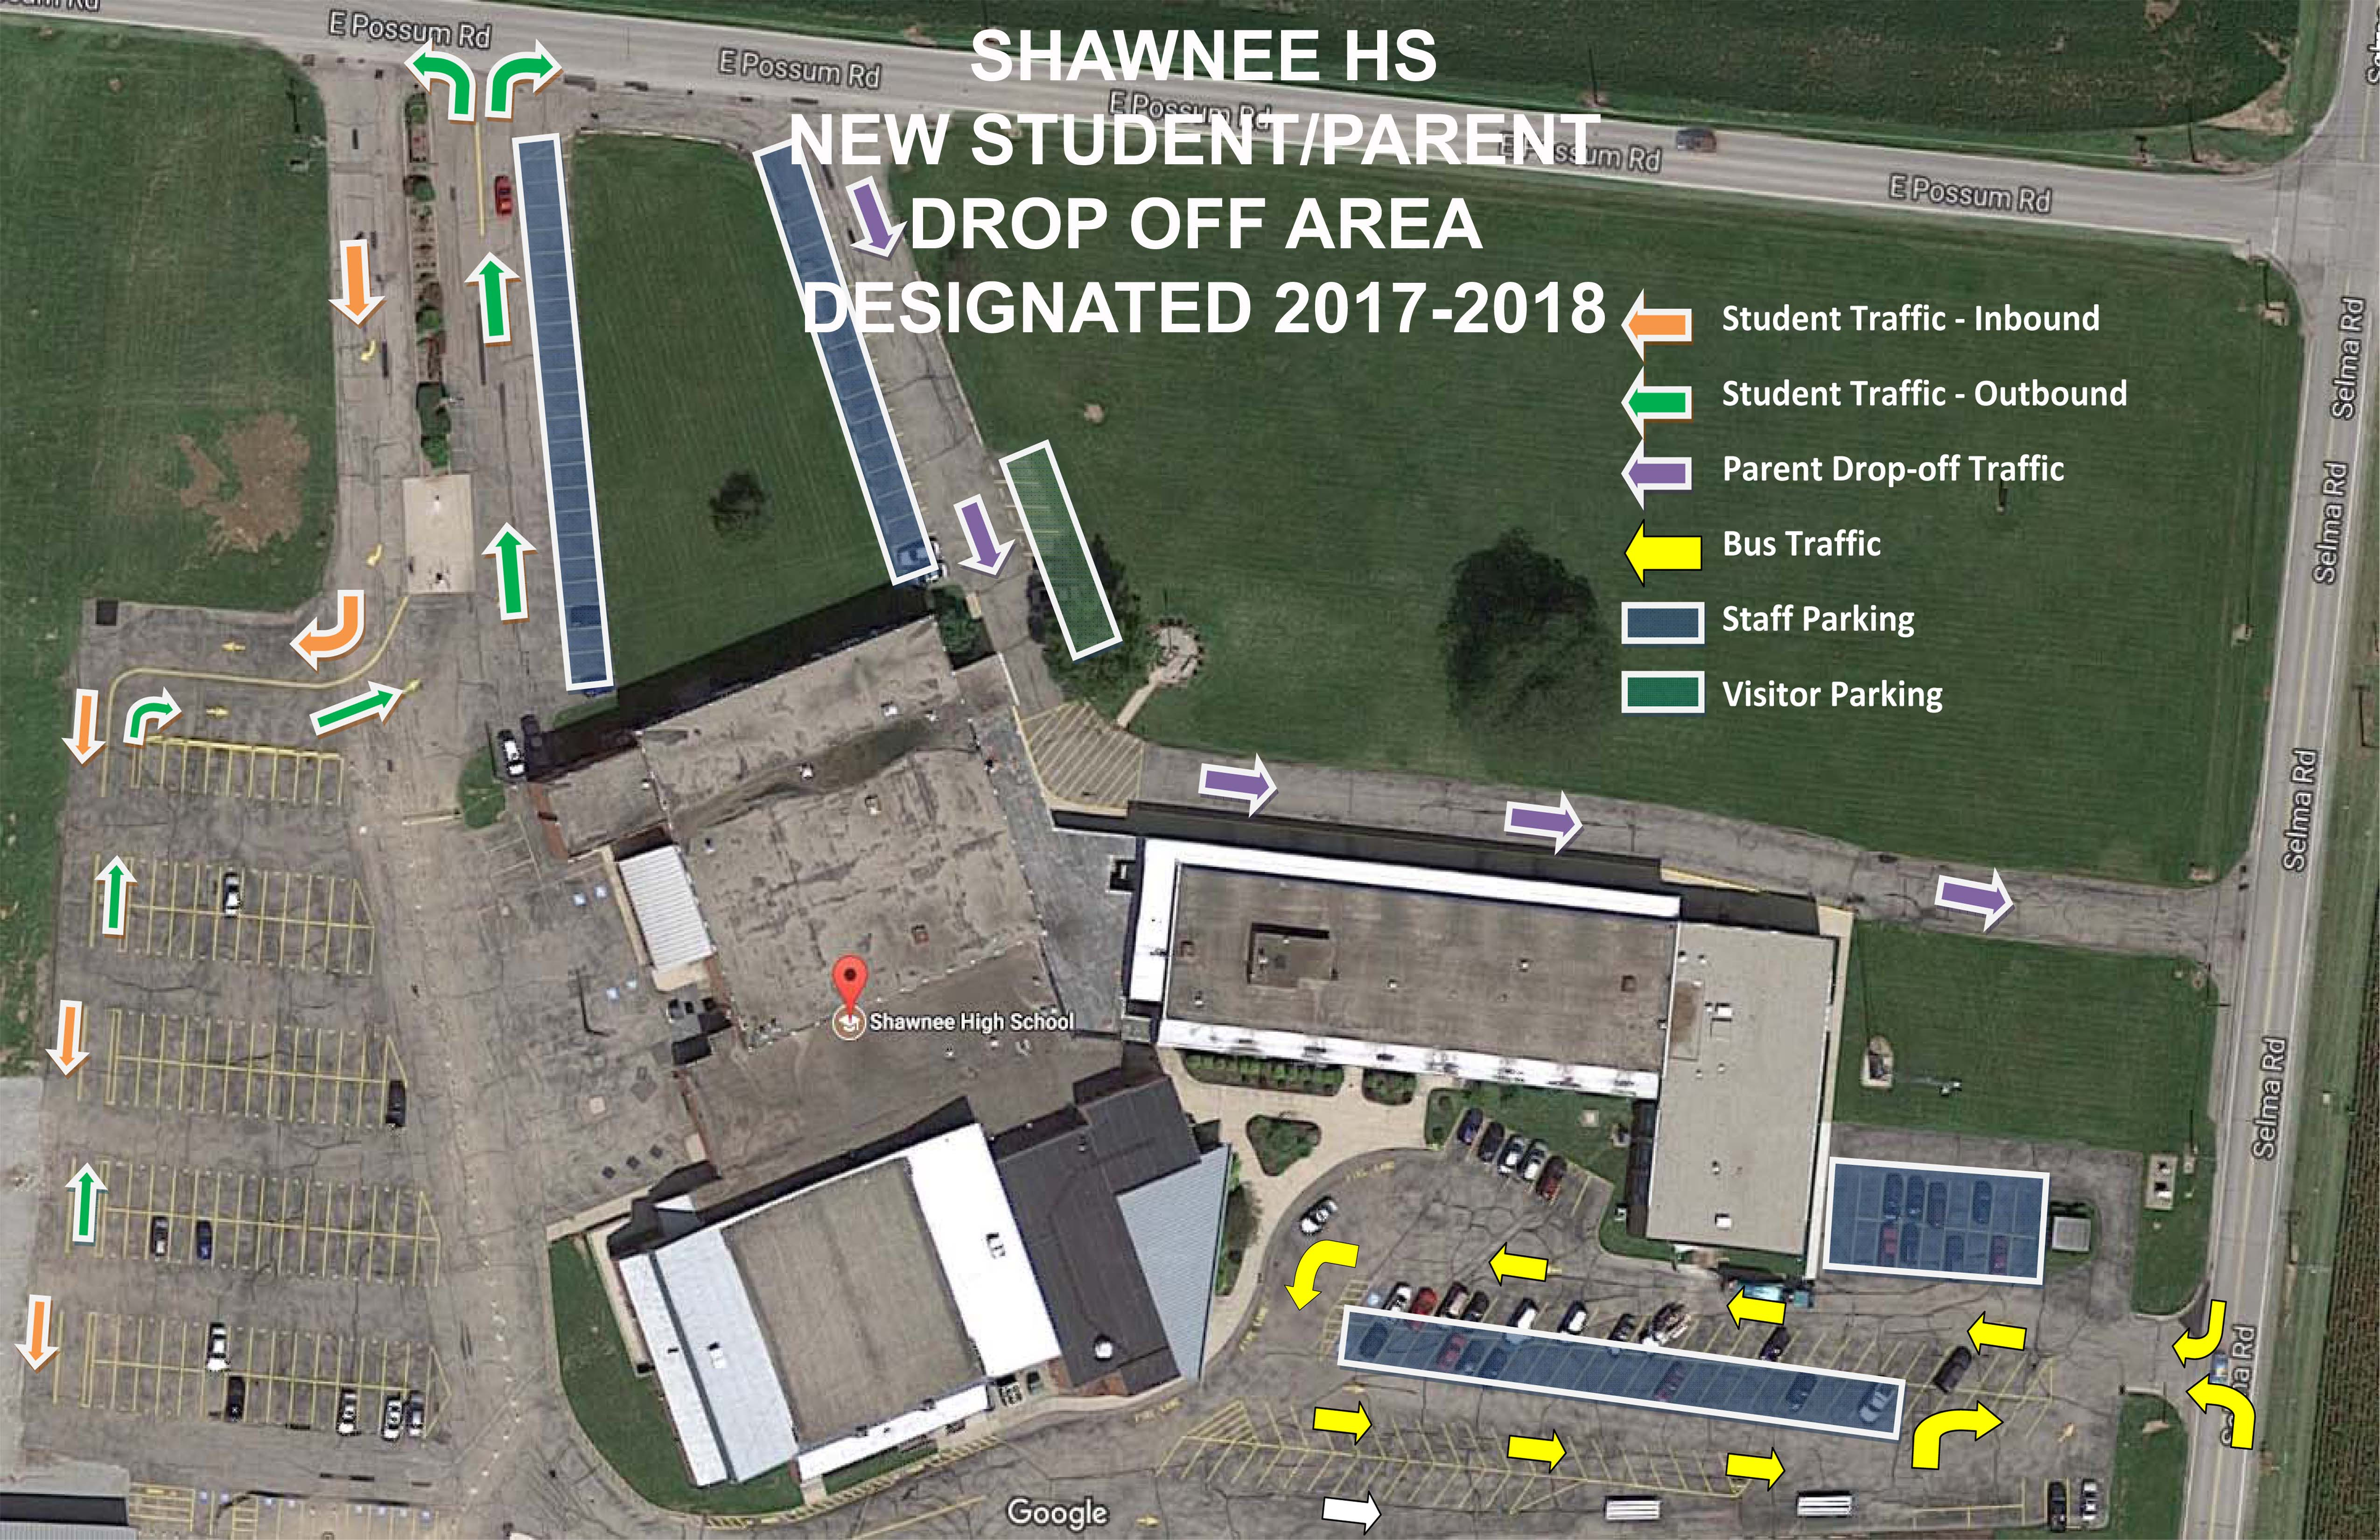 A new traffic flow has been planned for Shawnee Middle/High School based on safety recommendations from the county transportation department.